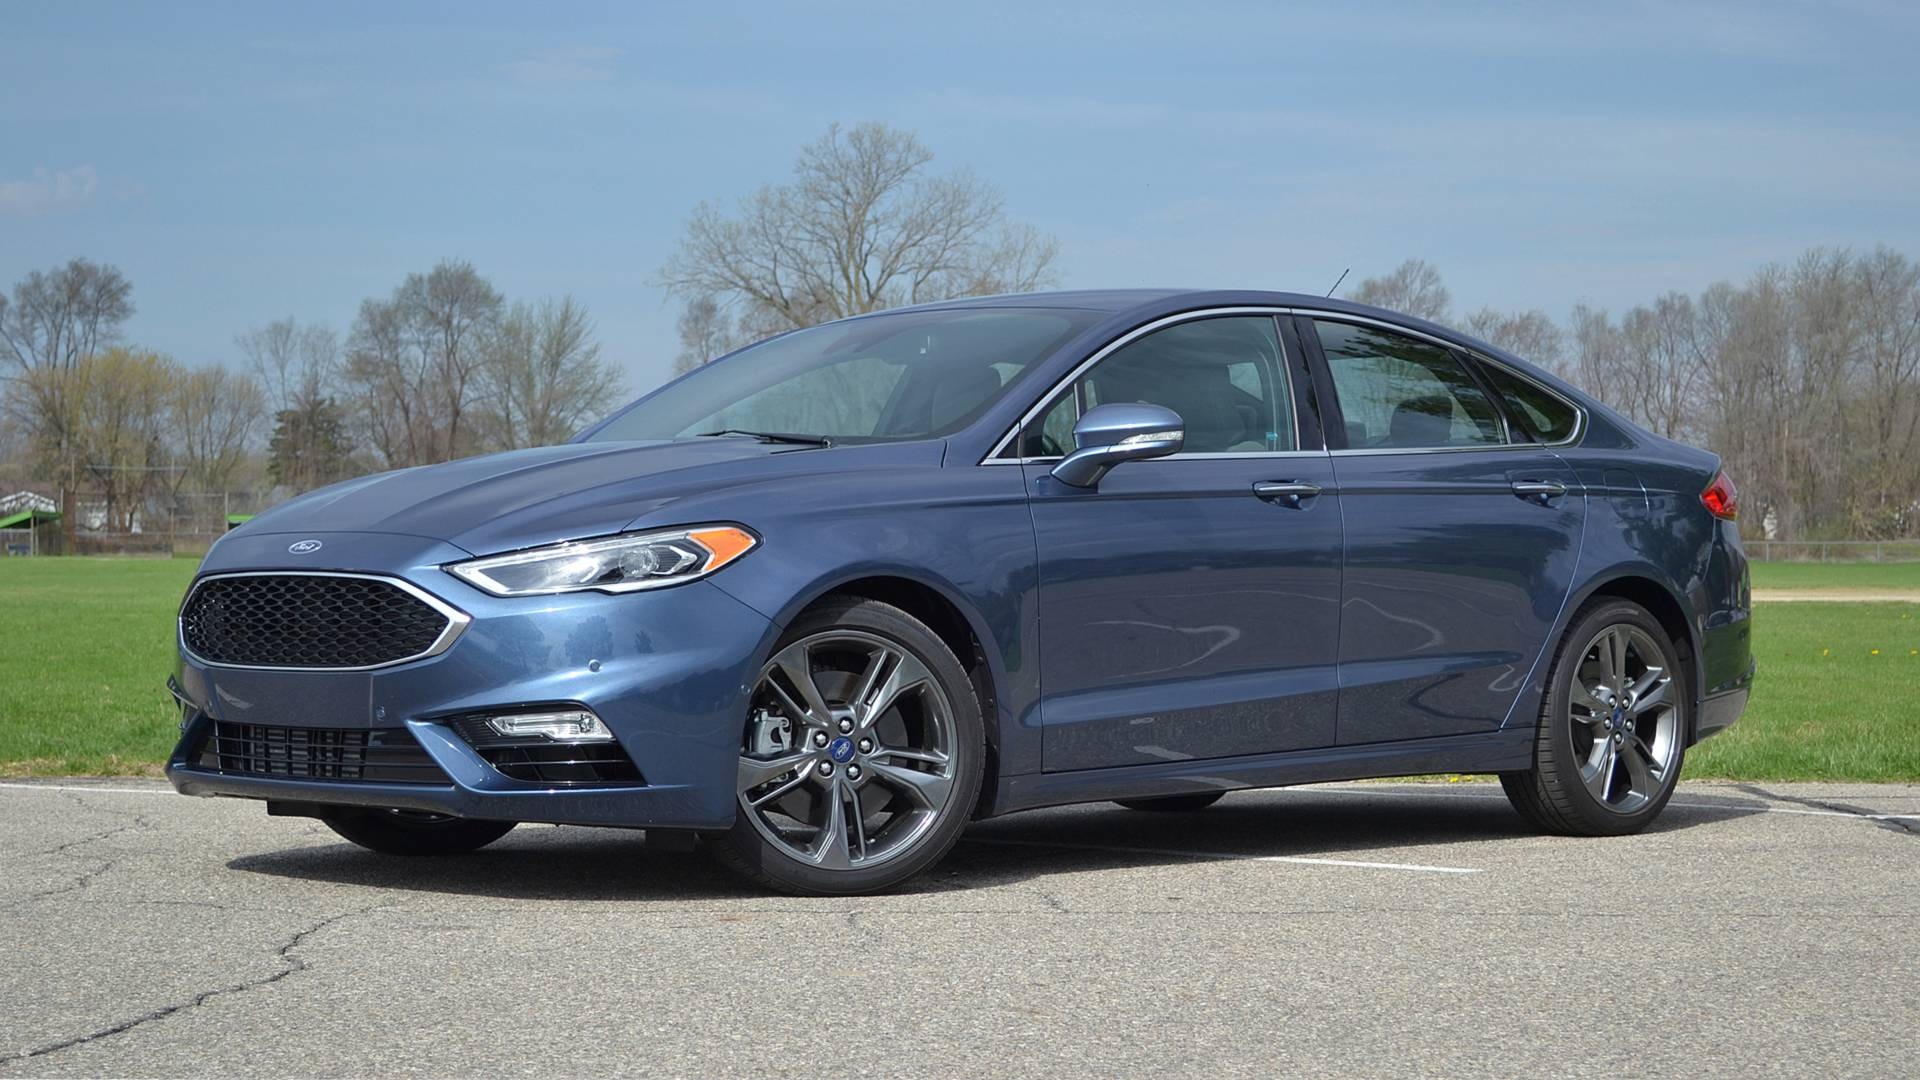 2020 Ford Fusion Review.Ford Fusion Won T Die Until At Least After The 2020 Model Year